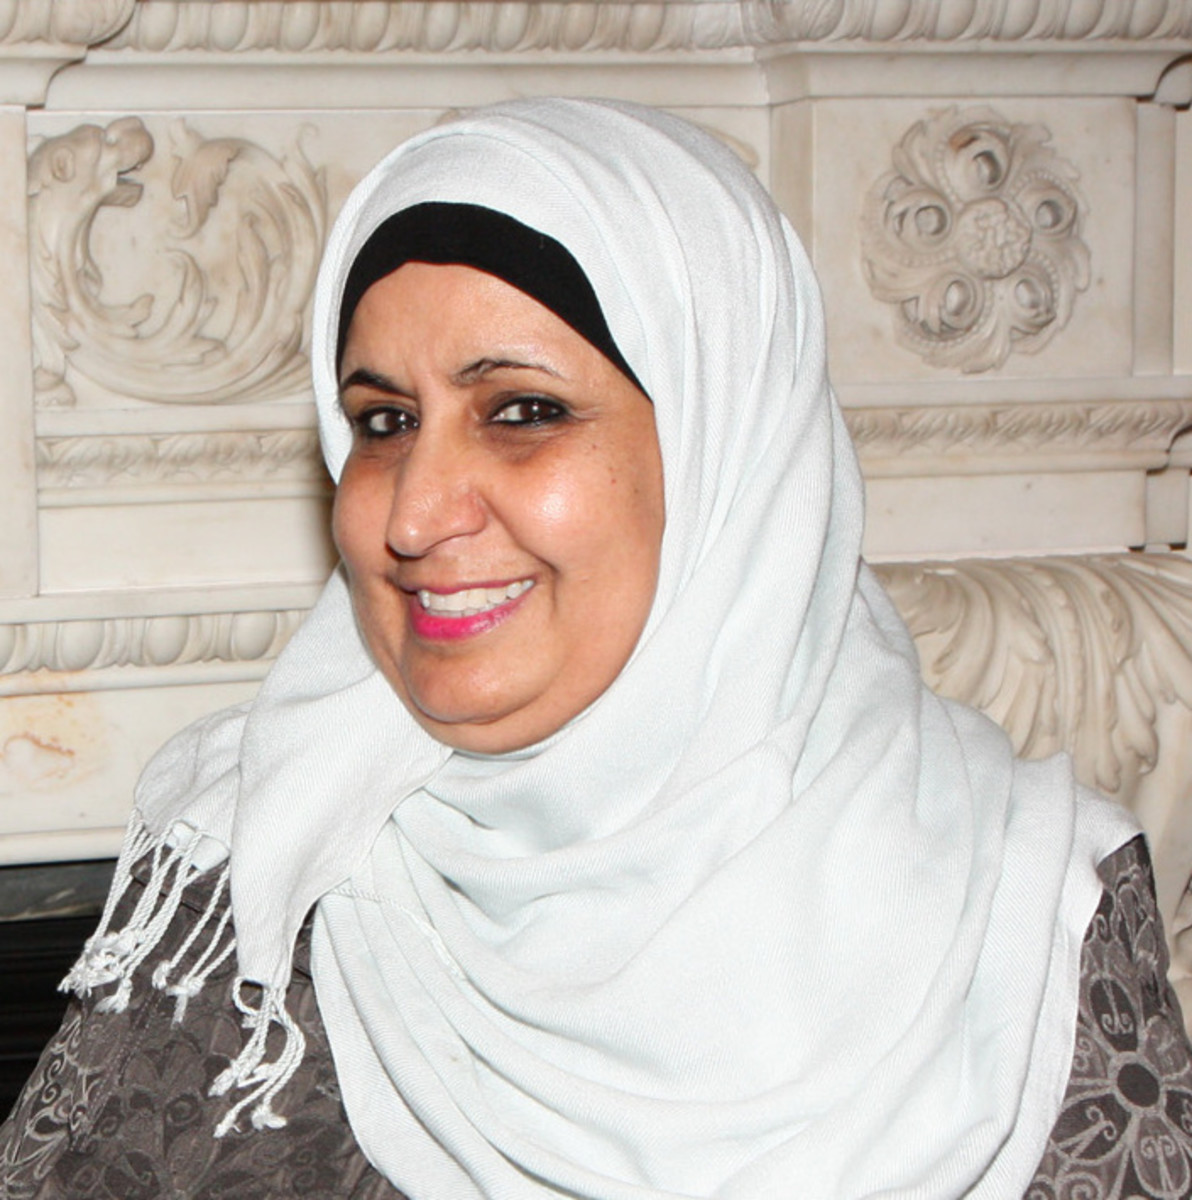 Saudi politican Norah Al Faiz in her pashmina scarf paired with an undercap and robe